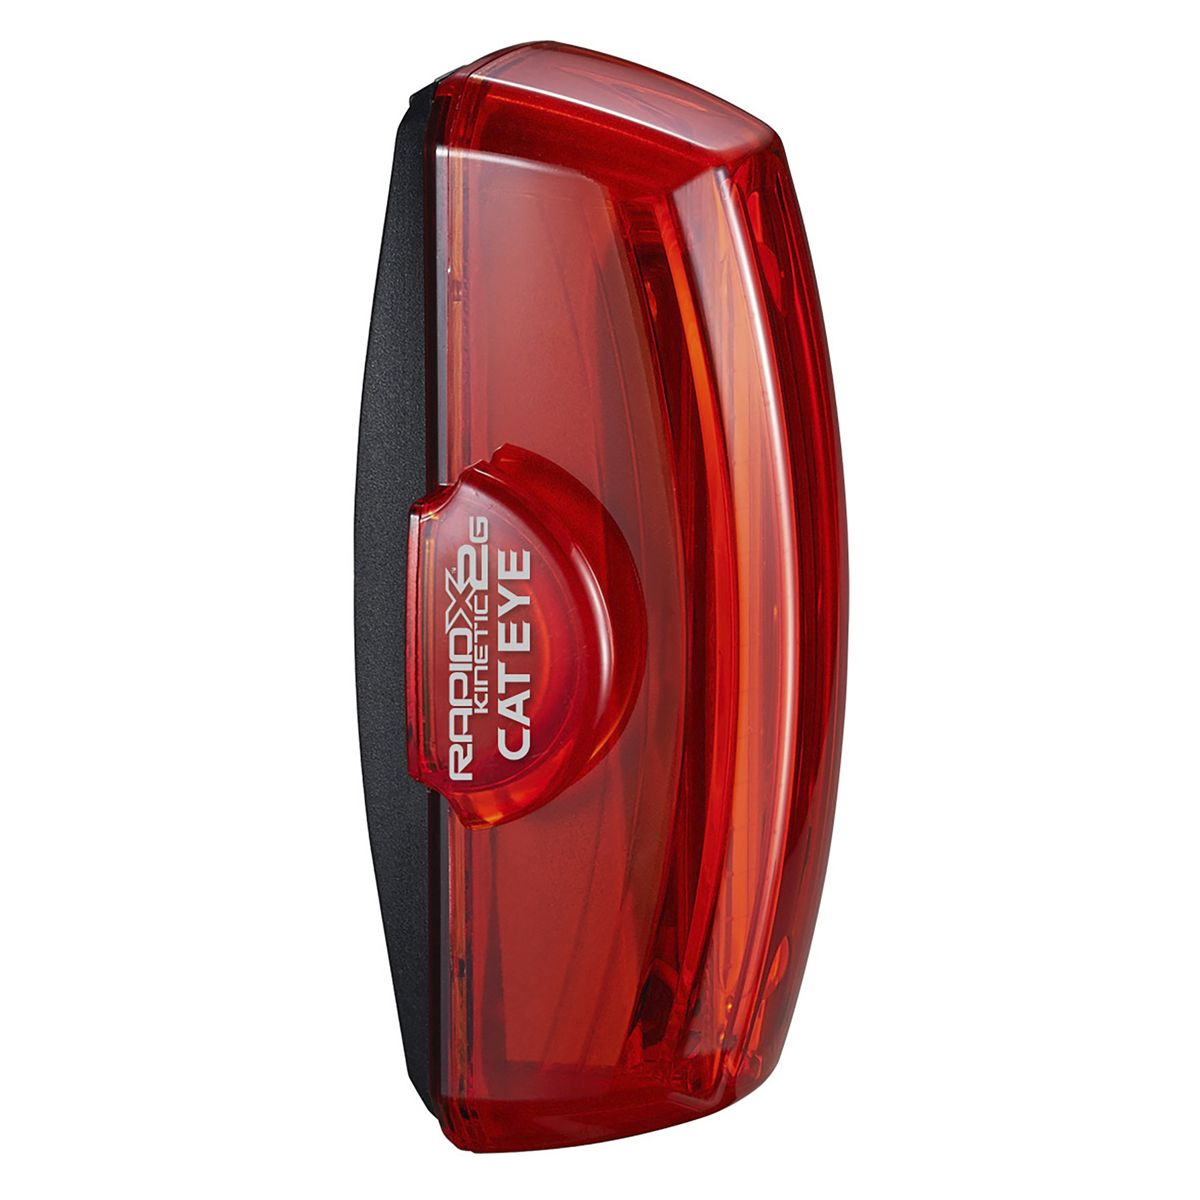 Rapid X2G Kinetic battery-powered tail light with brake light